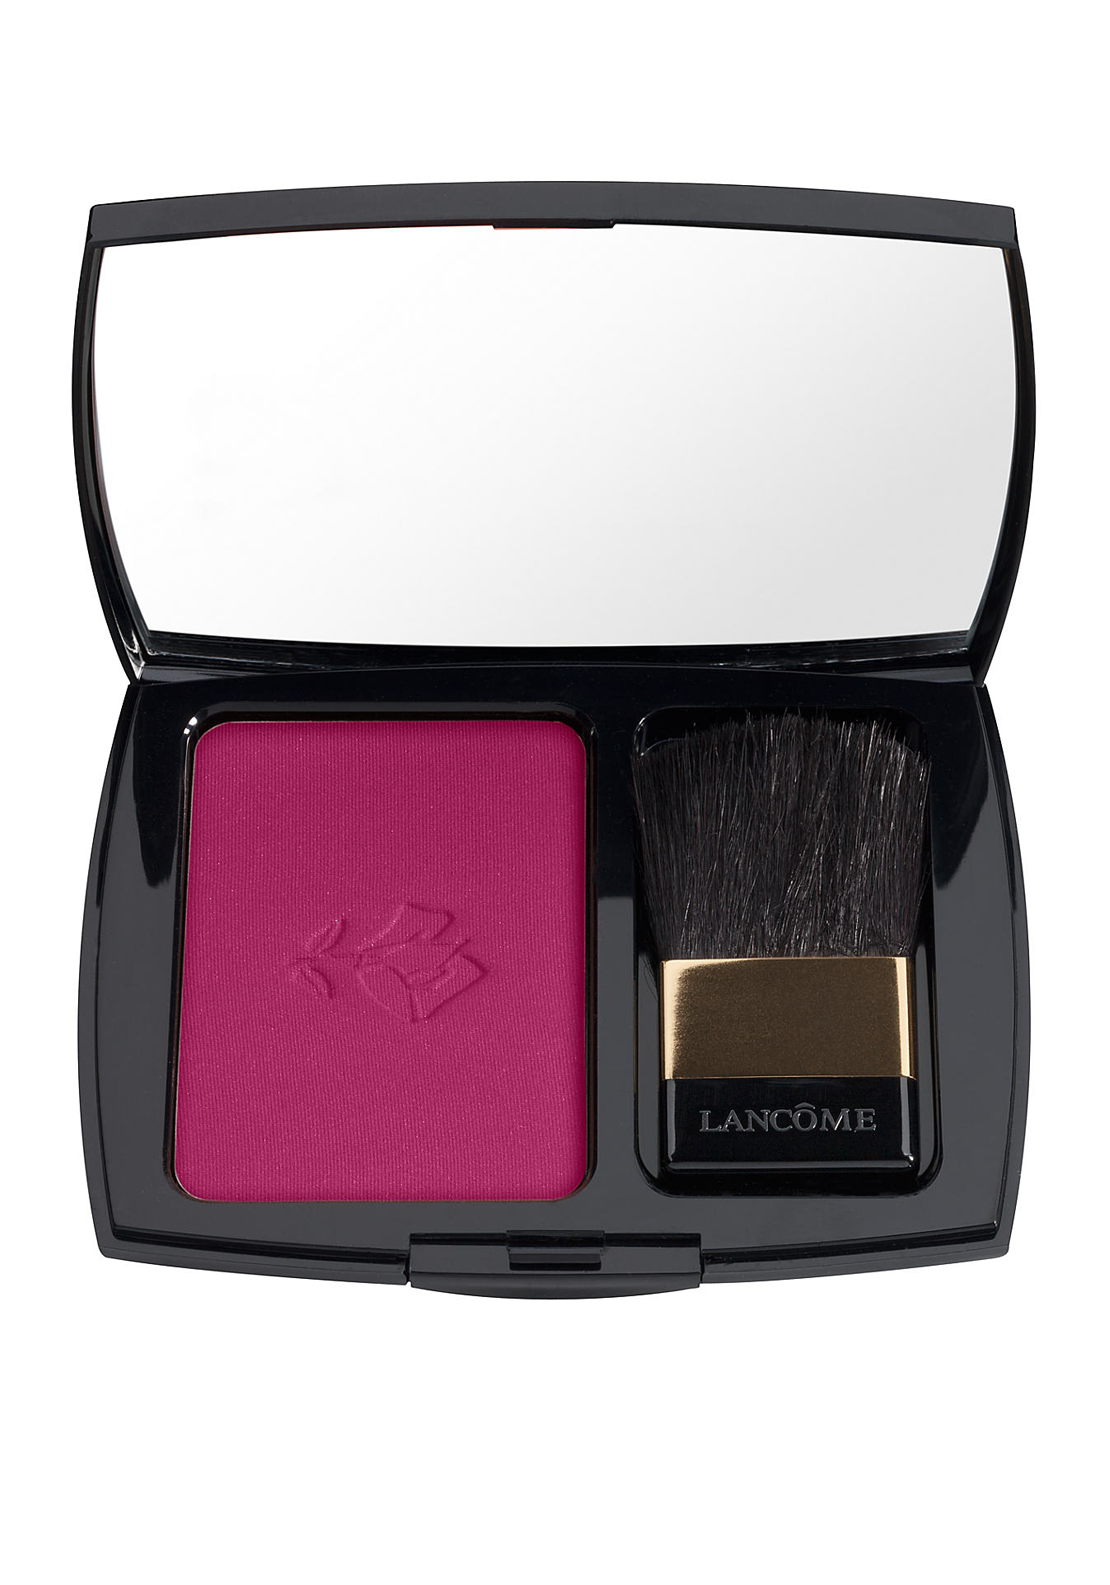 Lancome Blush Subtil Long Lasting Powder Blusher, 022